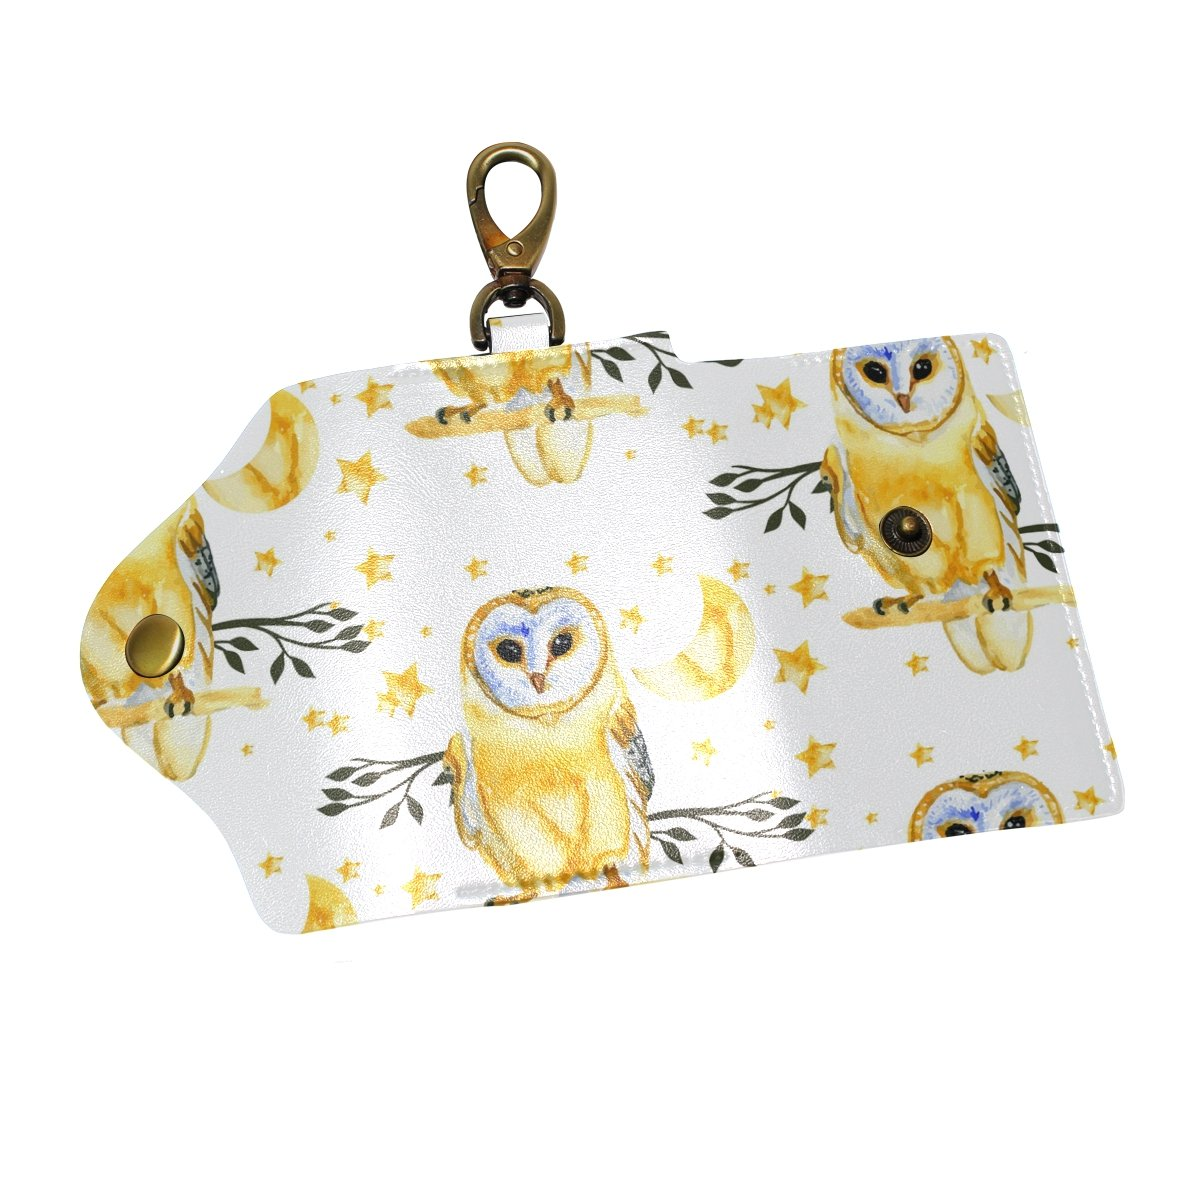 DEYYA Trendsetter Owl Leather Key Case Wallets Unisex Keychain Key Holder with 6 Hooks Snap Closure